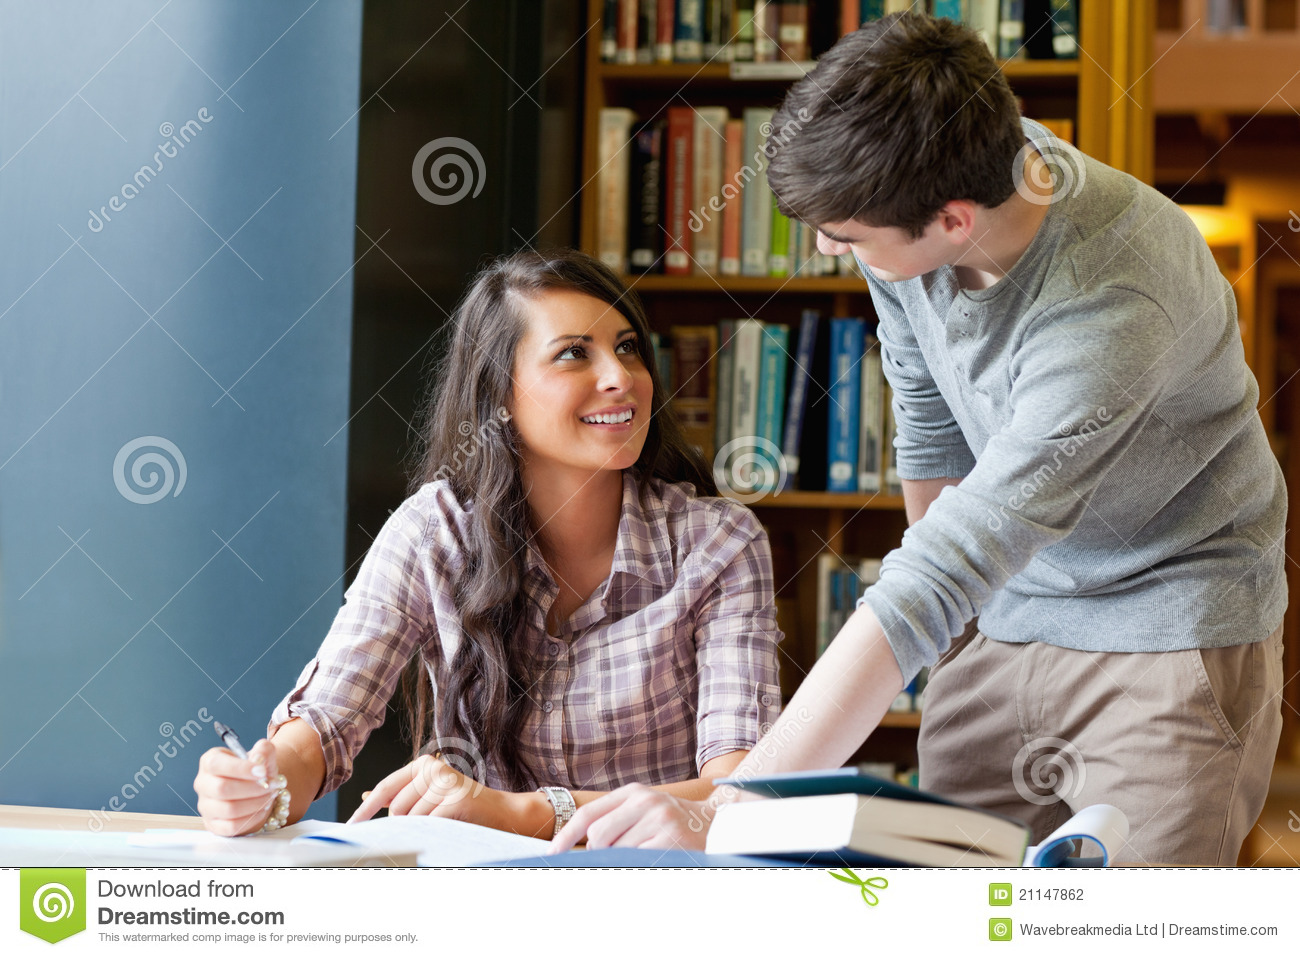 A Essay About Helping Someone Essay On Helping Others In Hindi Helping Nature Essay Law Office Downey Ca  Essay On Helping